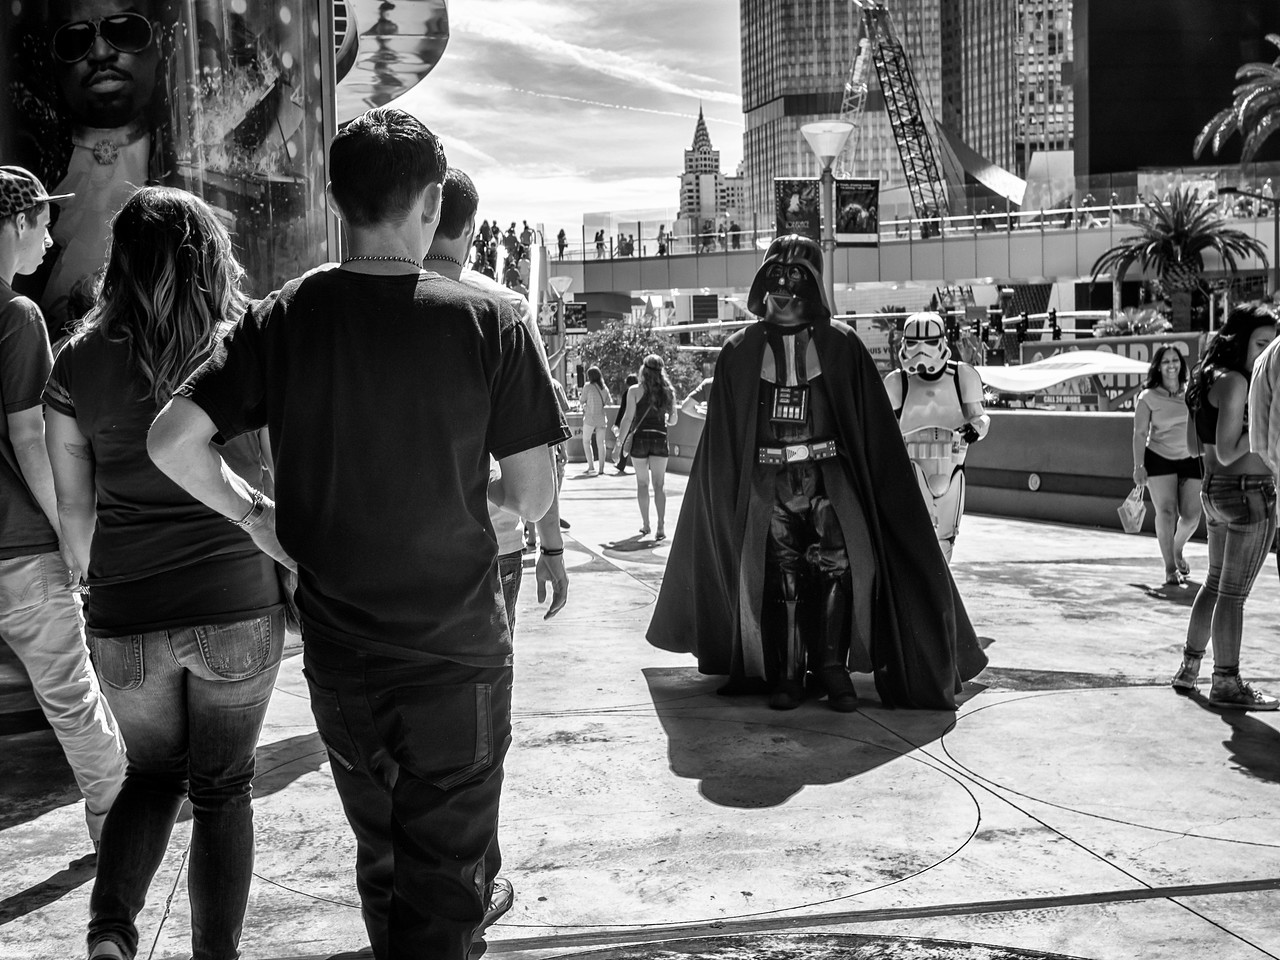 Darth in the City